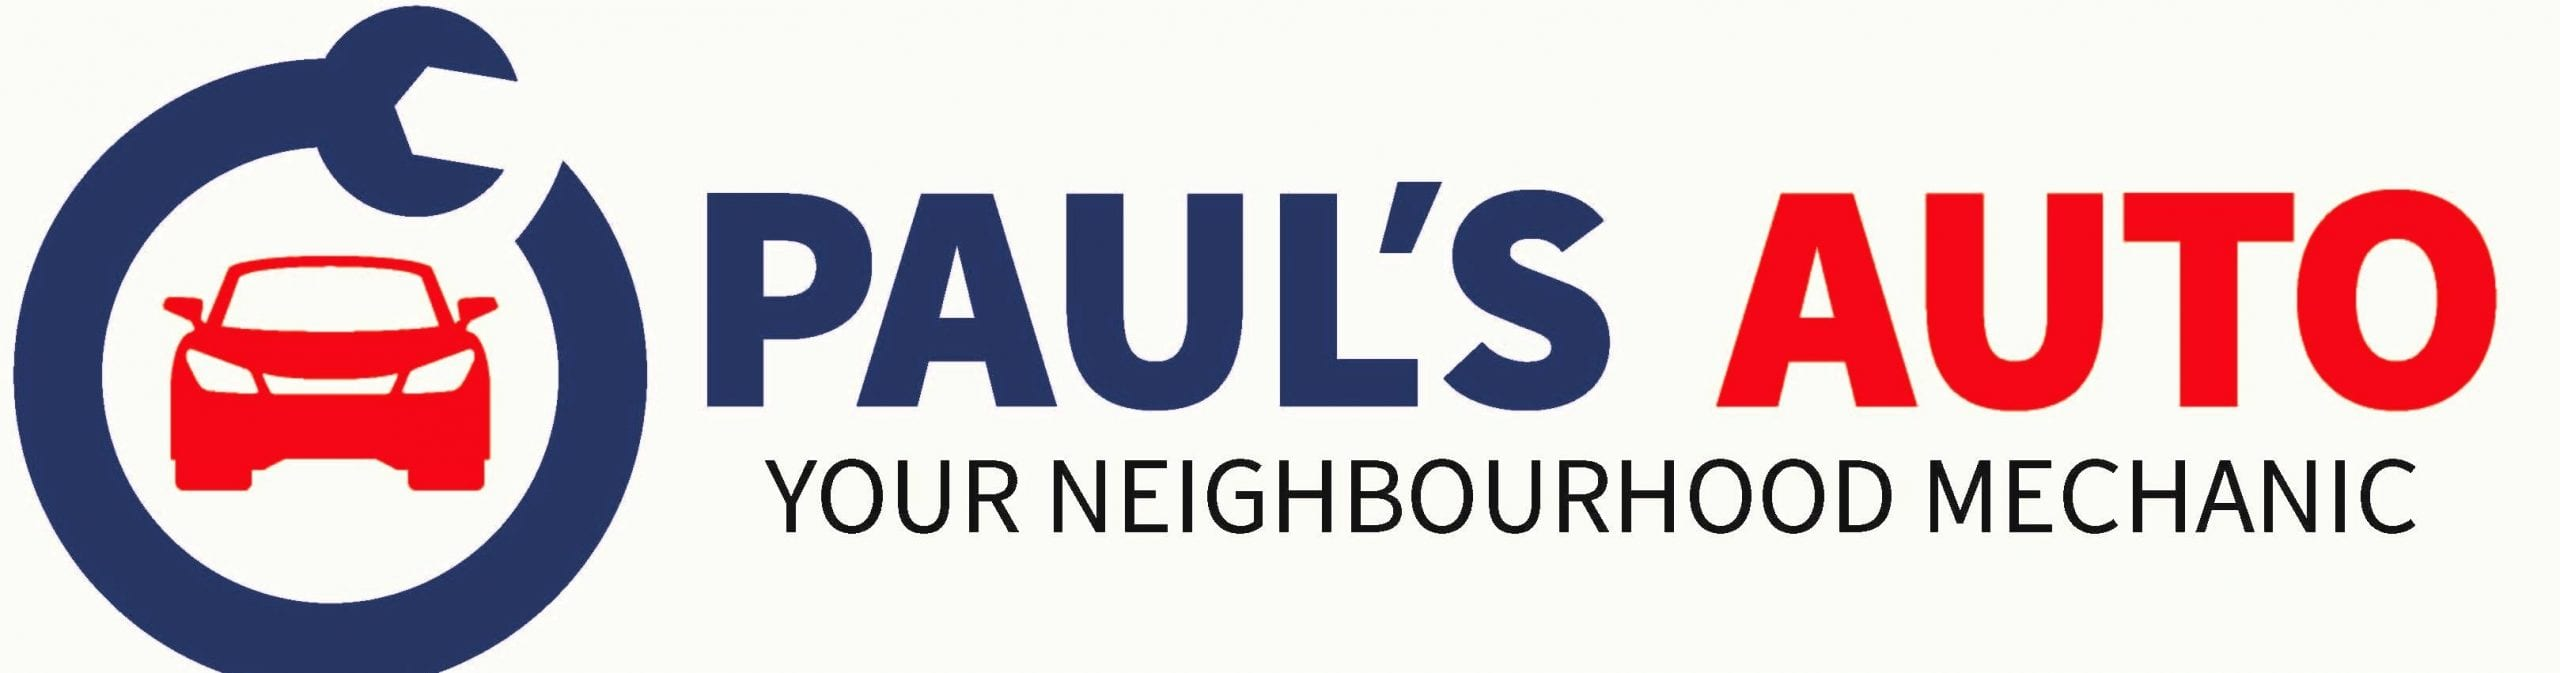 Paul's Auto Services | Vehicle Repair Shop Kingston